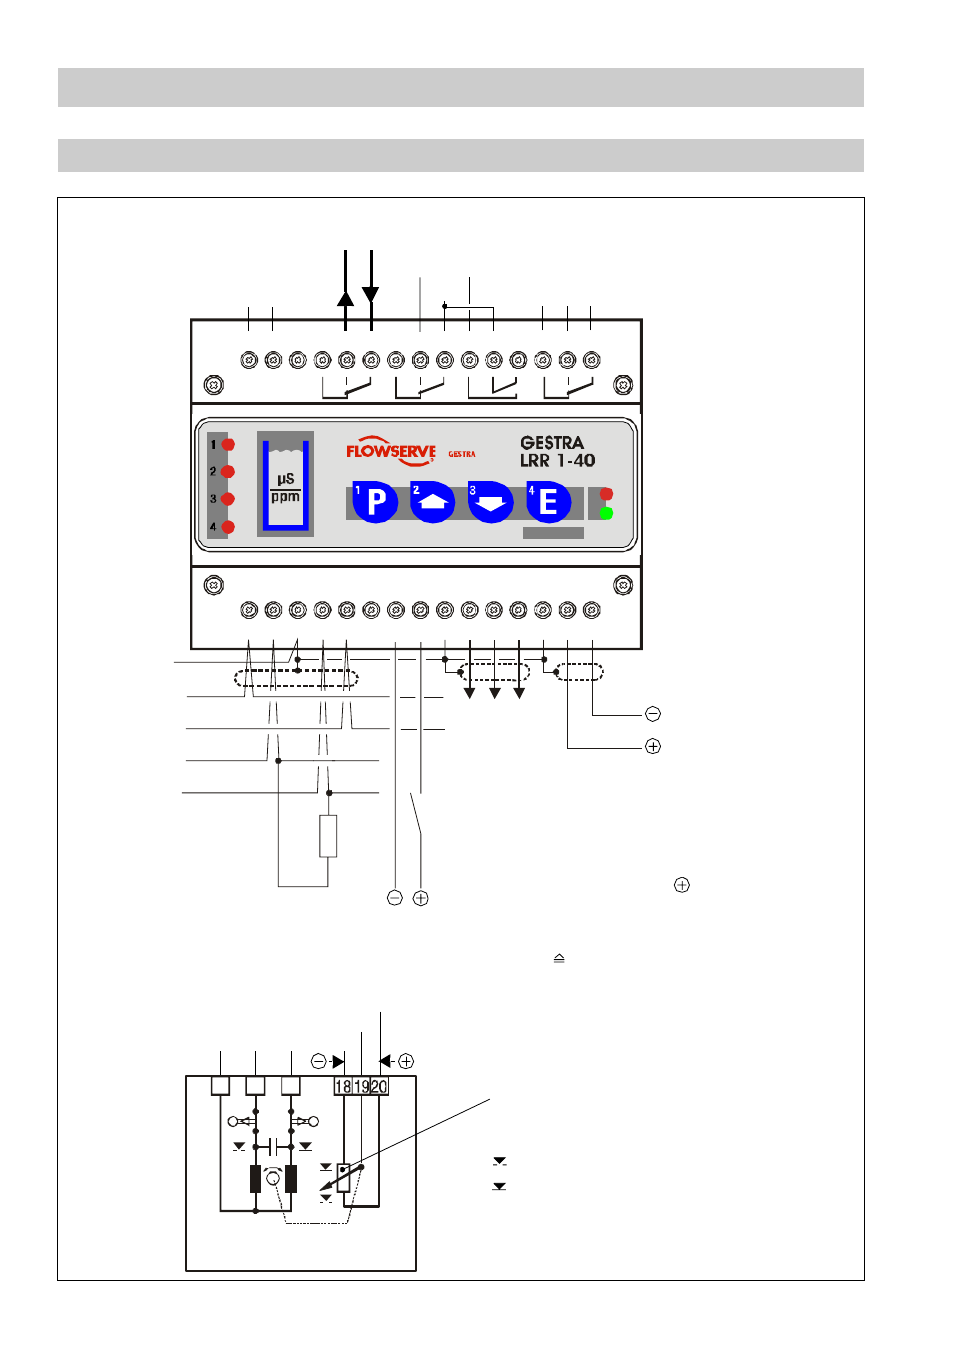 Motor Wiring Diagrams On Baldor 3 Phase 510 Flowserve Diagram Library